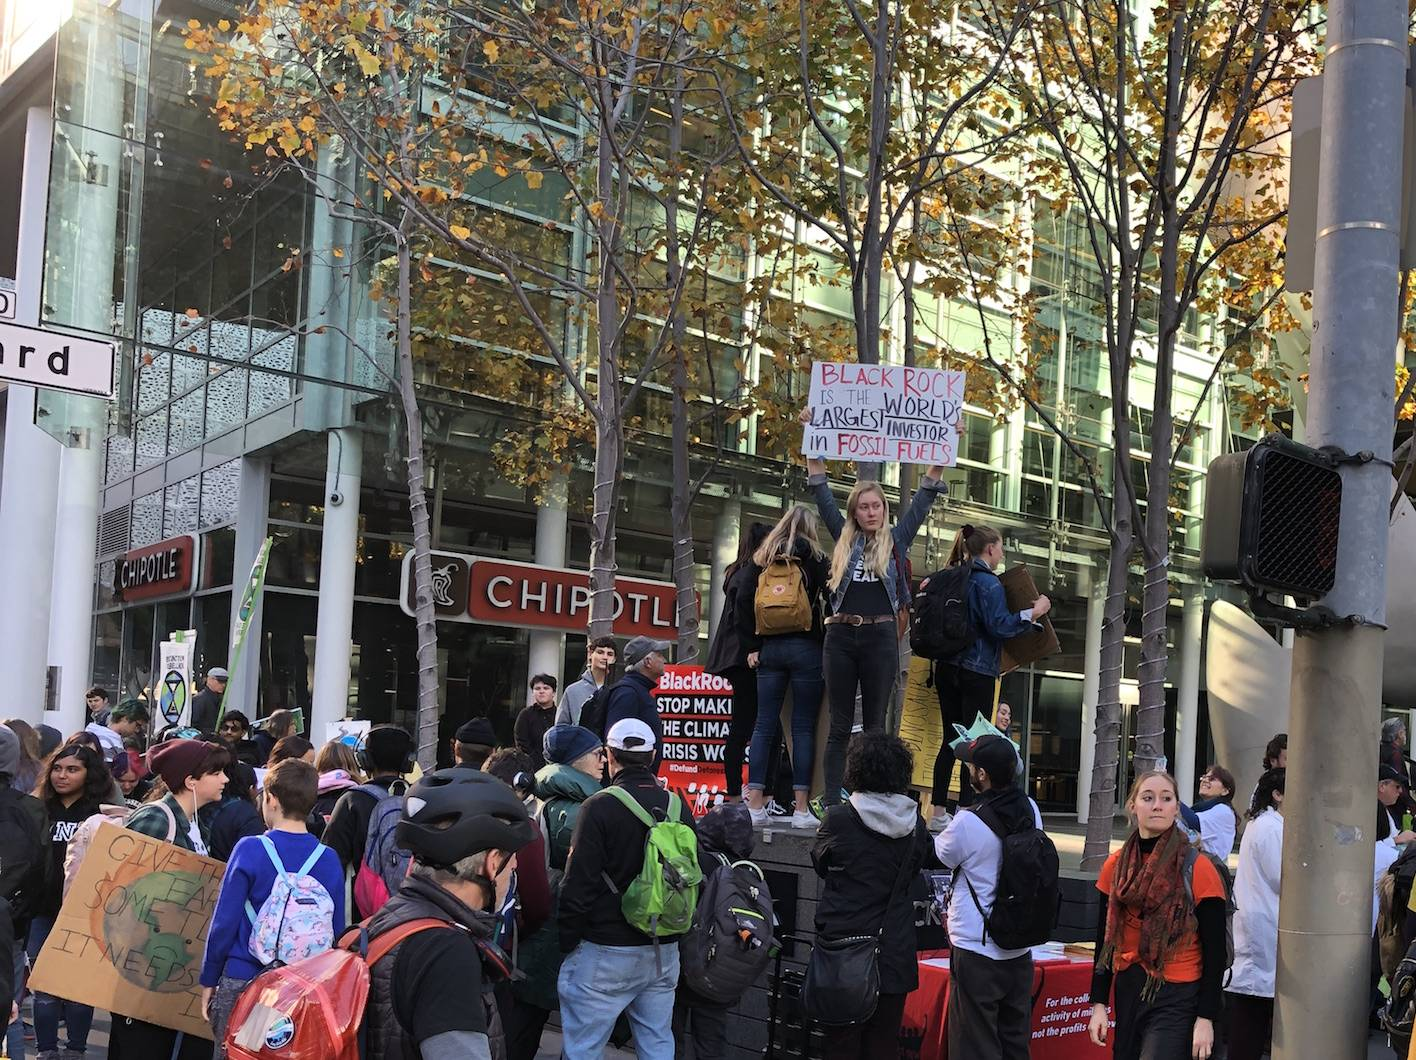 PHOTOS: Youth Climate Activists Protest Investment Giant BlackRock in San Francisco